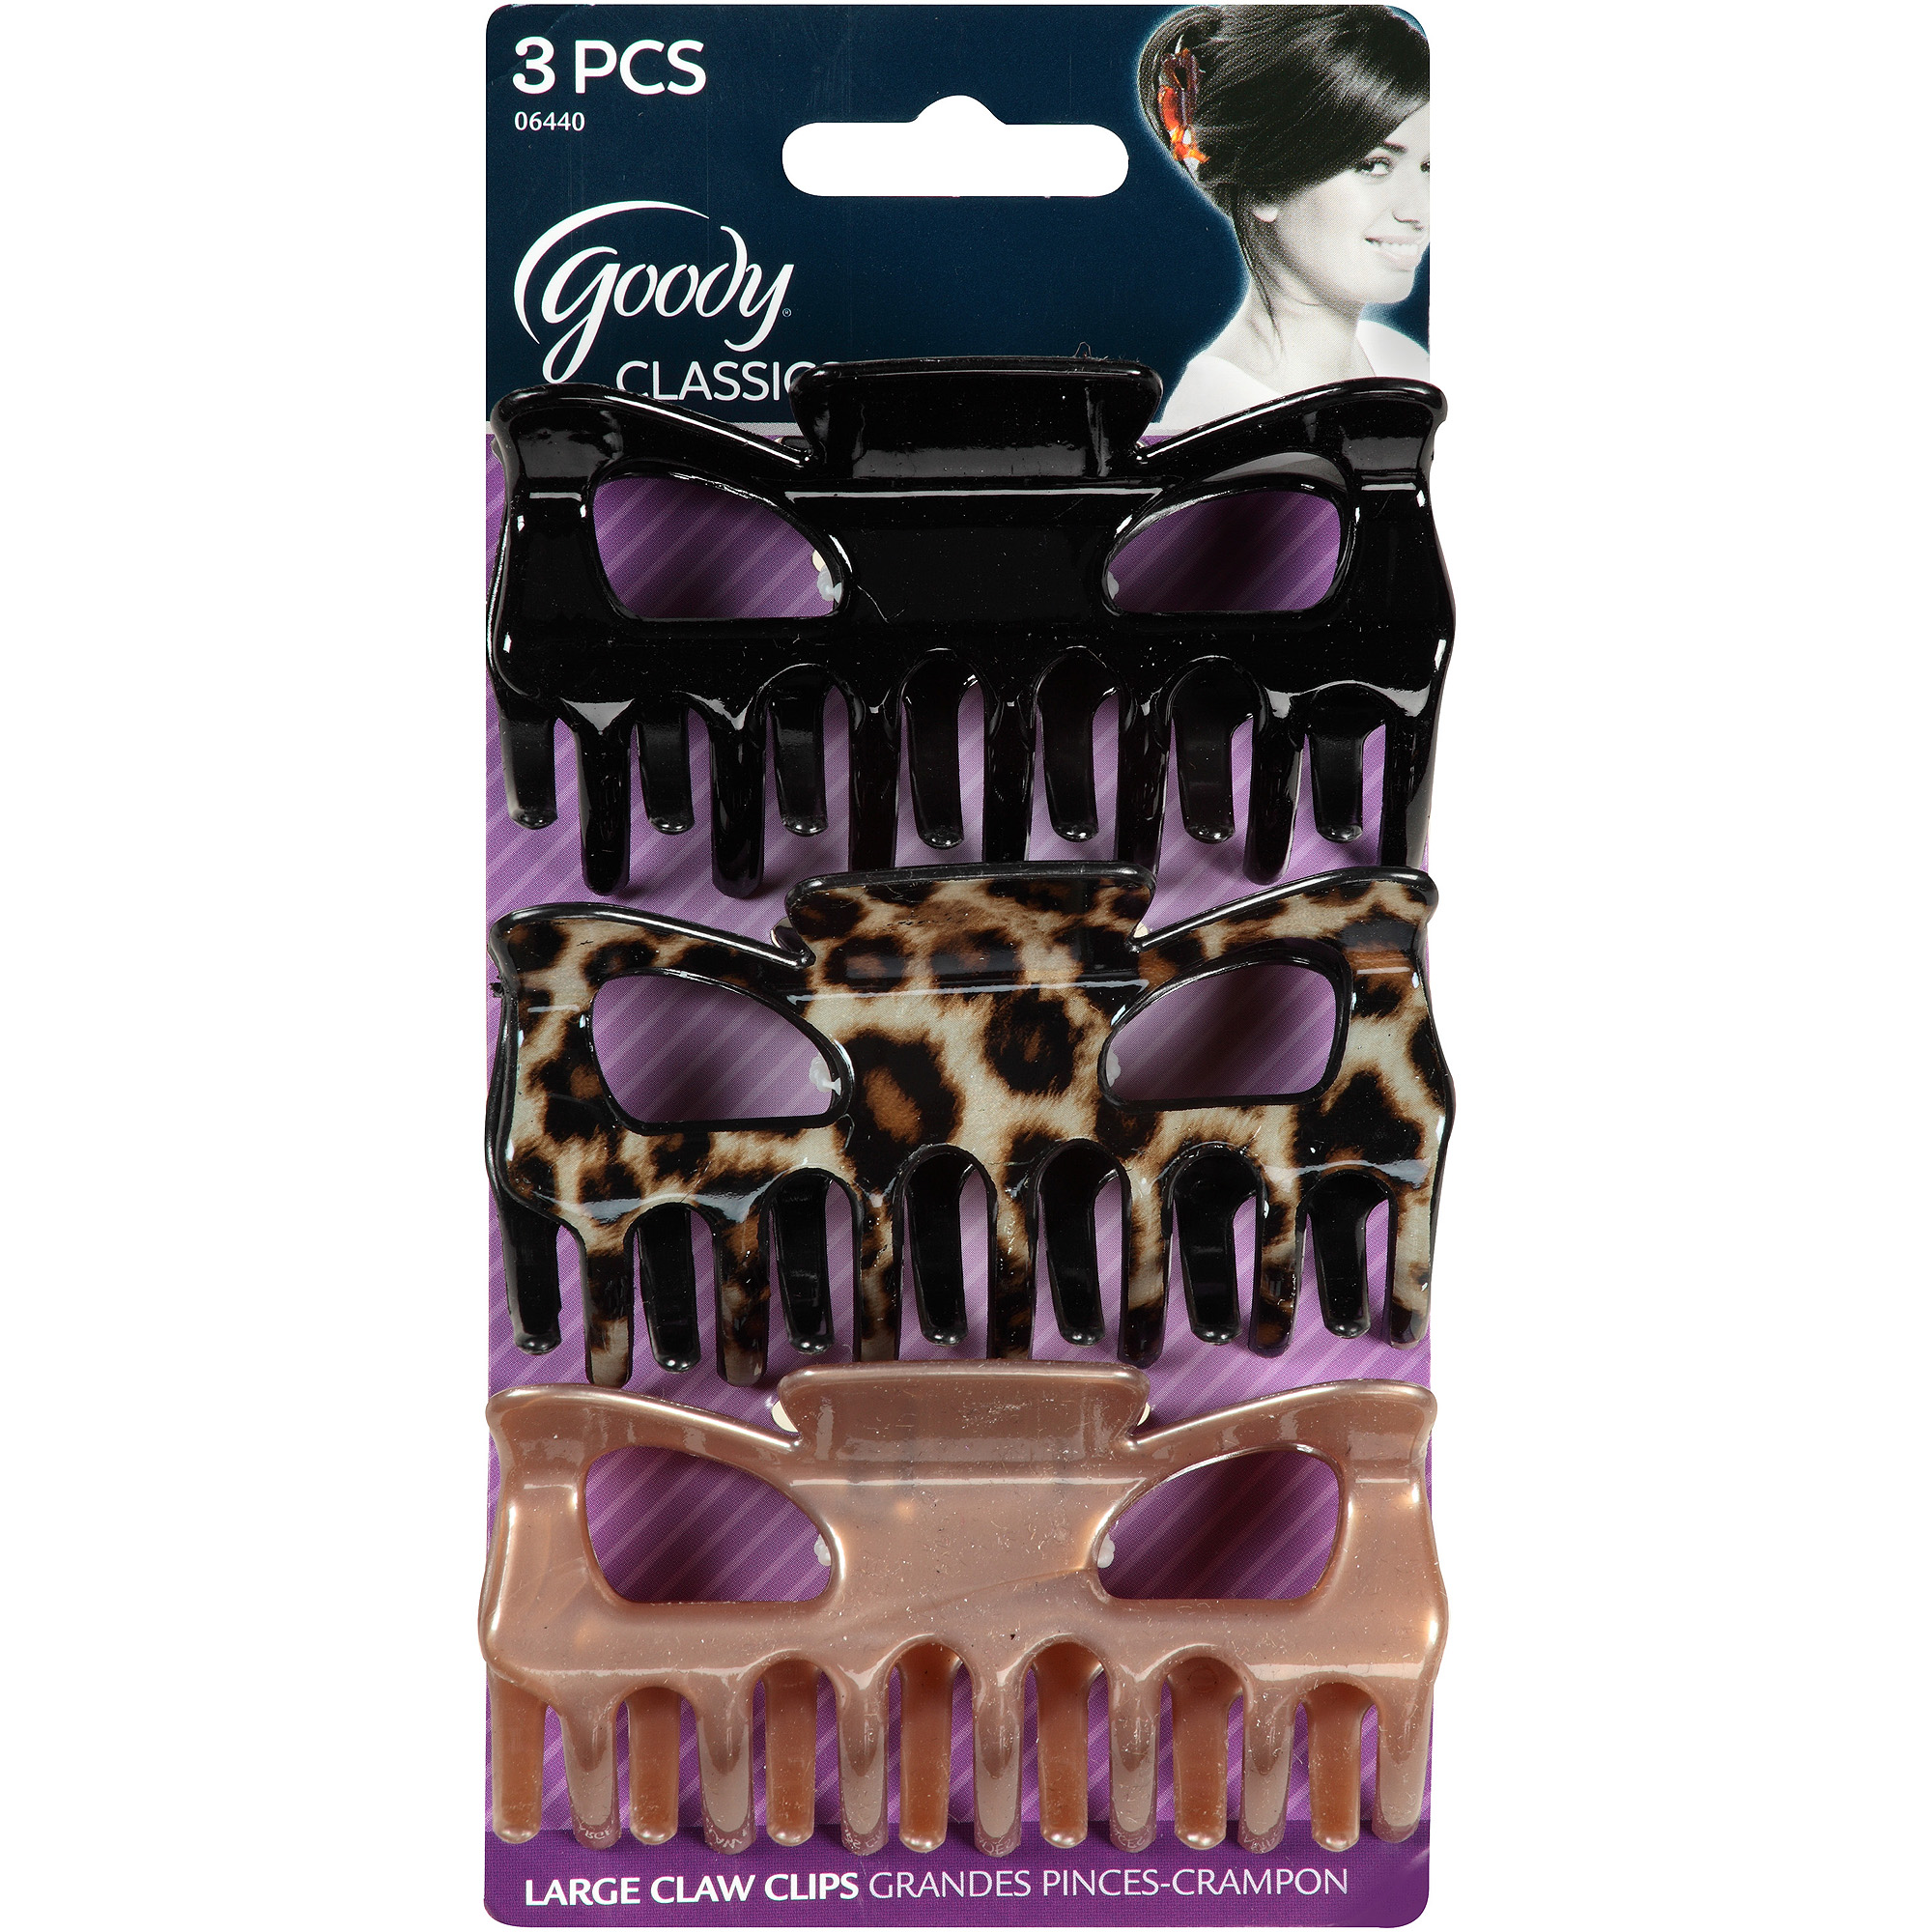 Goody Classics Large Claw Clips, 06440, 3 count